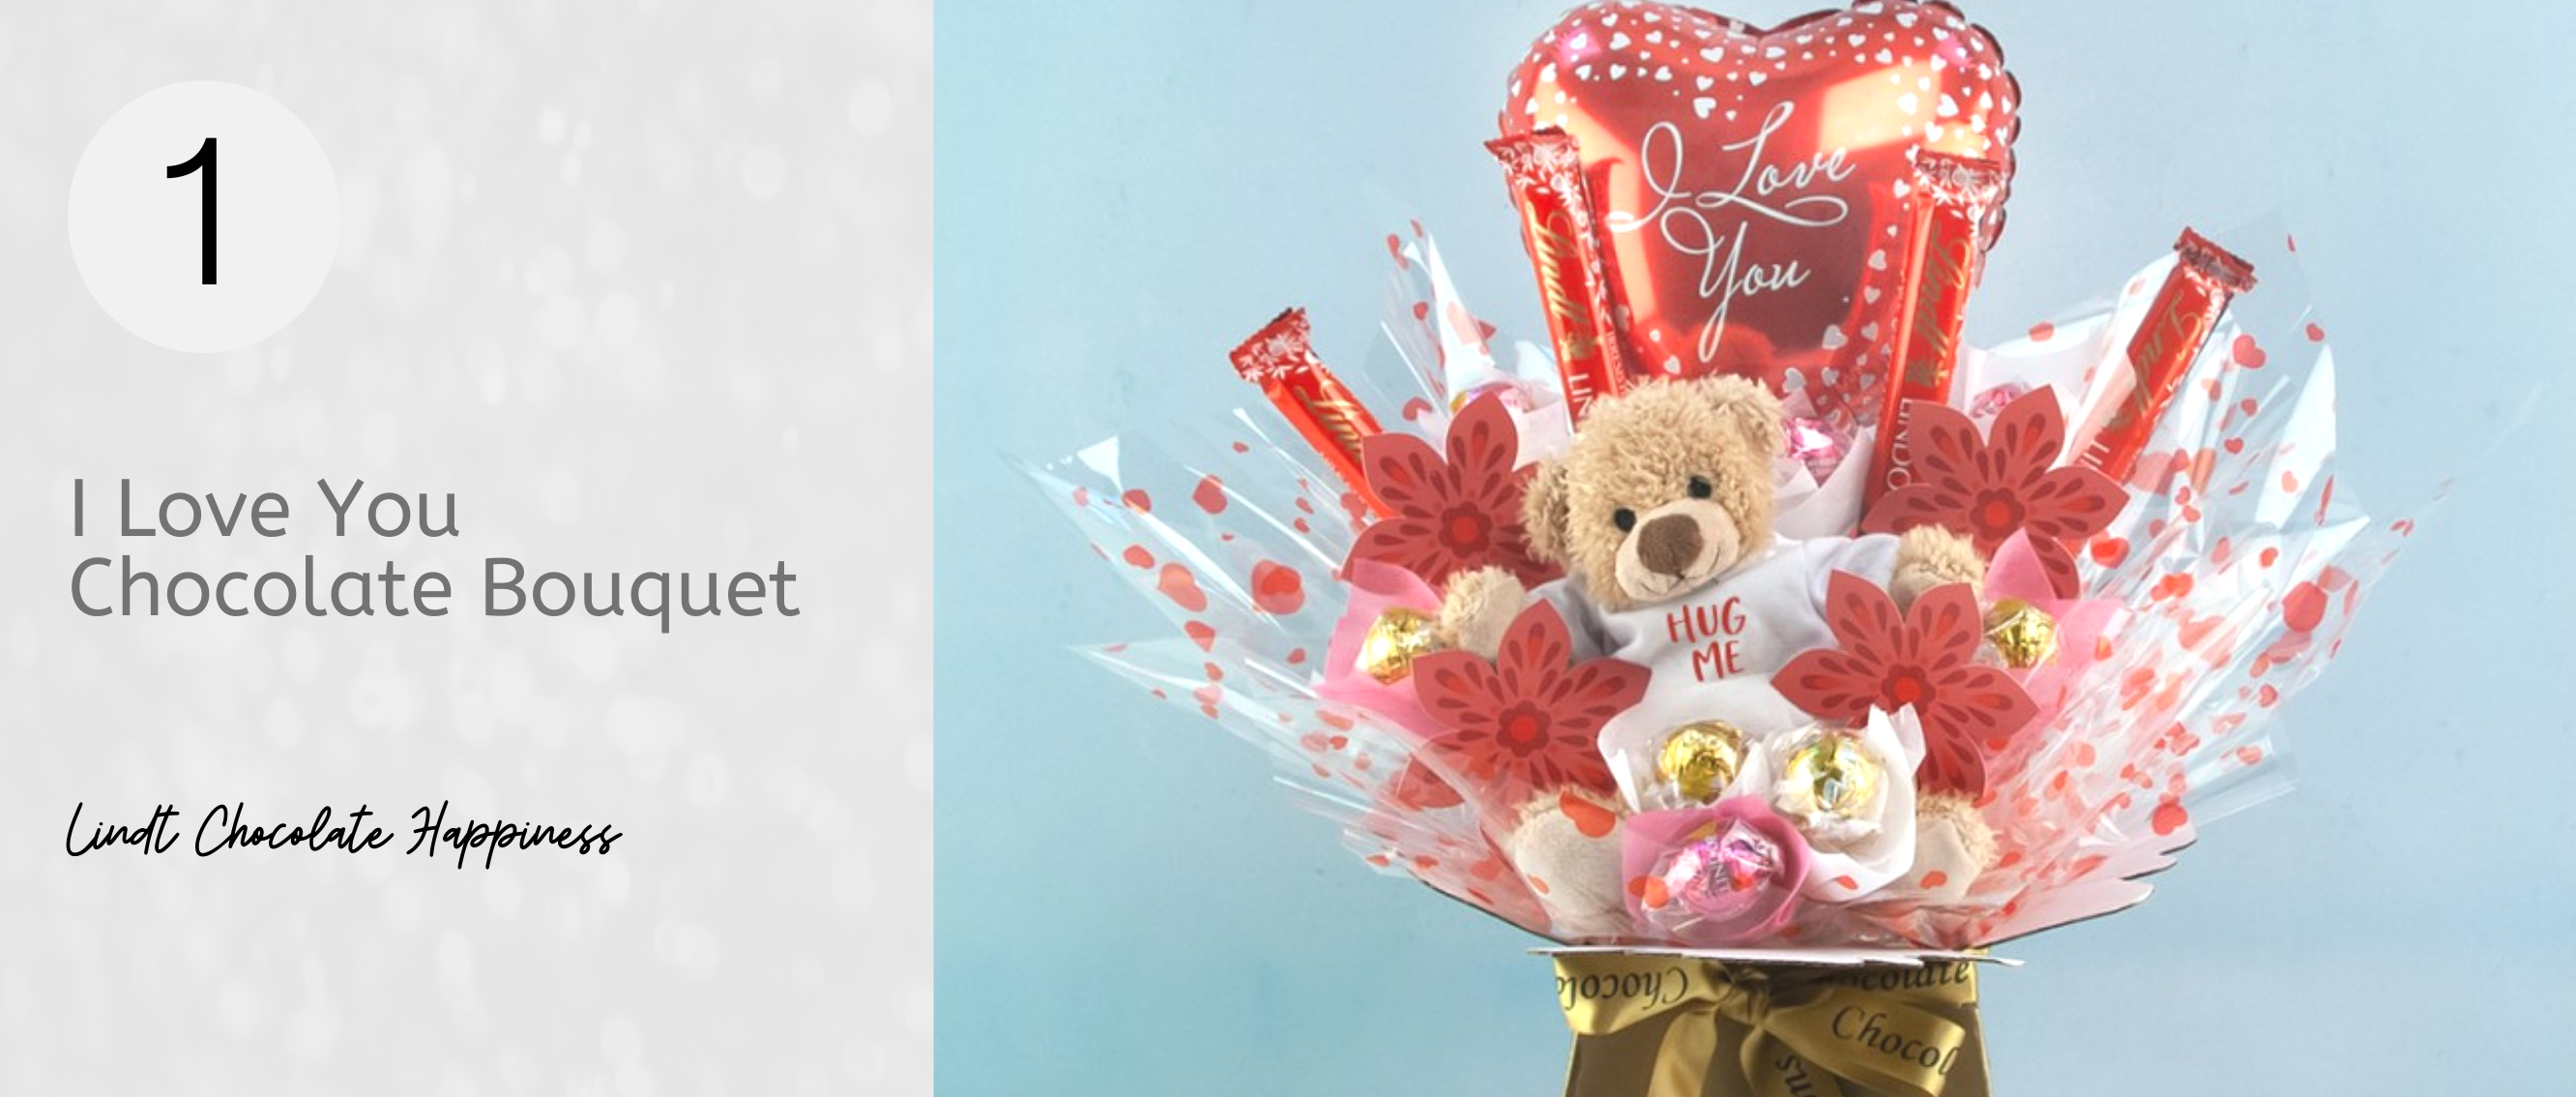 Romantic Chocolate Bouquet for Valentine's Day with Teddy Bear...